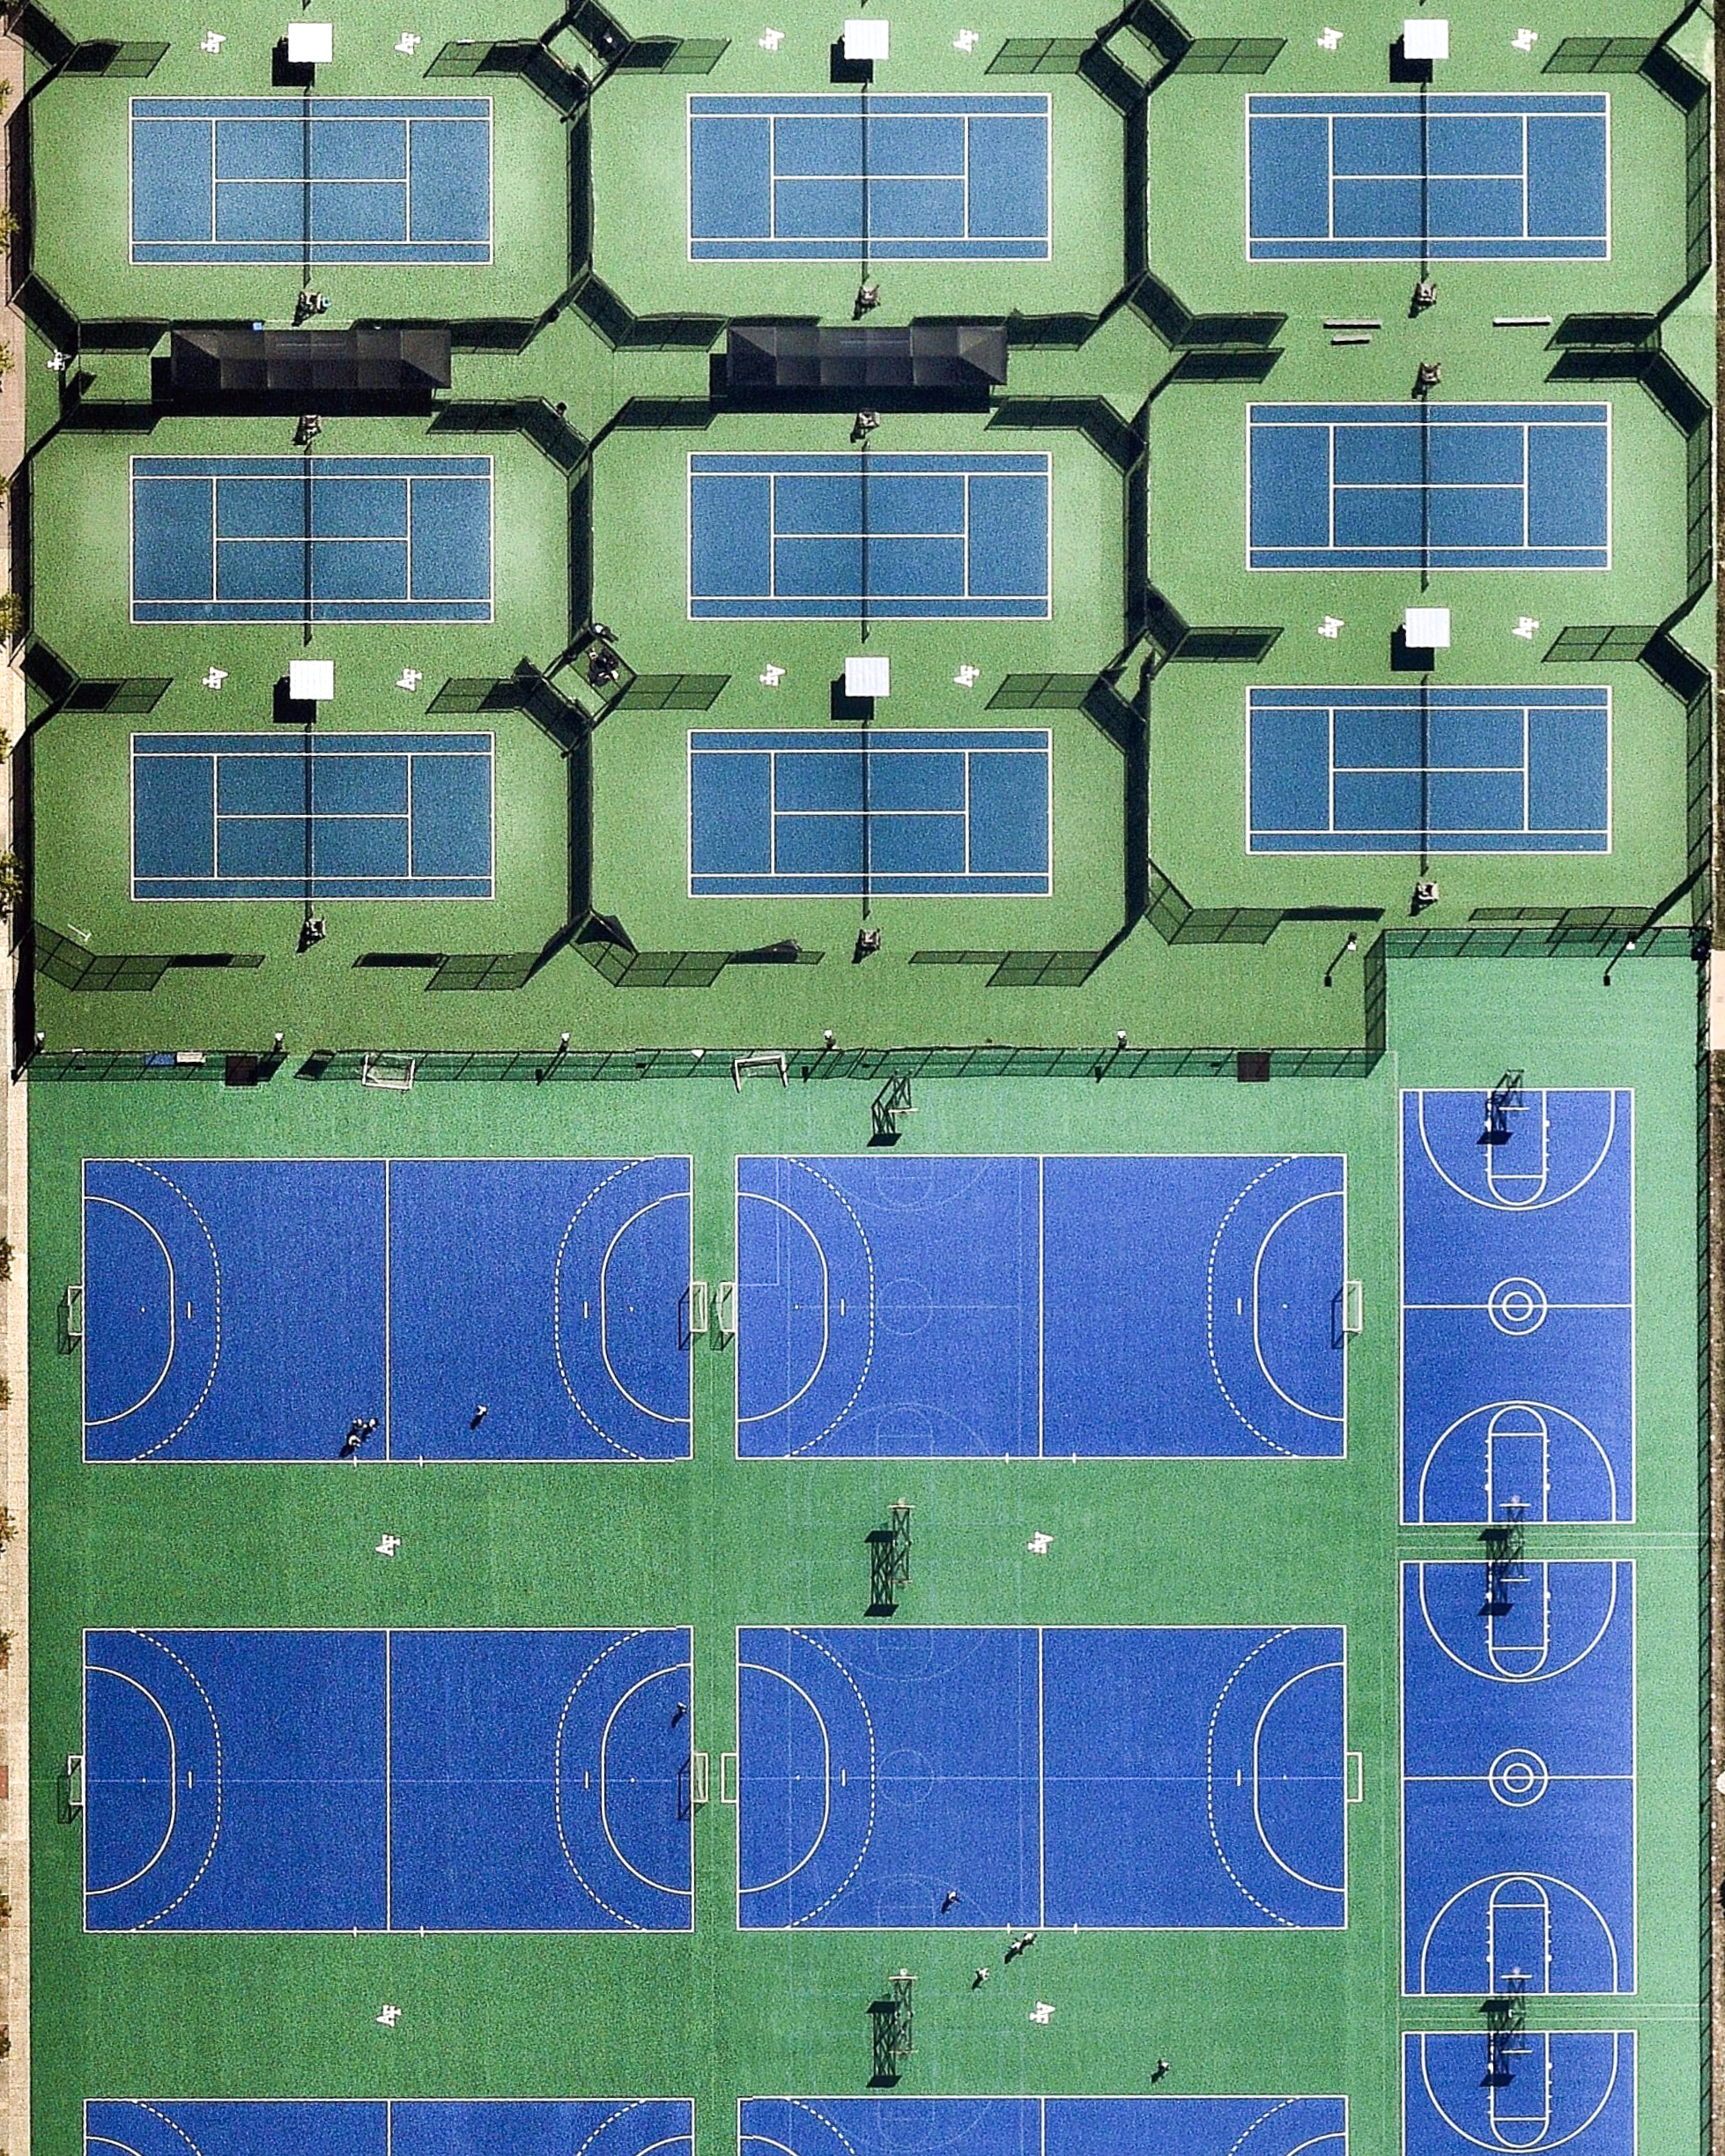 """Several athletic fields are positioned side-by-side in the Cadet Area of the United States Air Force Academy, in Colorado Springs, Colorado. In addition to the fields and courts shown in this Overview, the area contains a Cadet Gymnasium with indoor basketball and tennis courts, an Olympic-size swimming and diving pool, a water polo pool, numerous squash and racquetball courts, two weight-training rooms, and specialized facilities for volleyball, fencing, gymnastics, boxing, and riflery.  39°00'43.2""""N, 104°53'13.3""""W  Source imagery: Nearmap"""